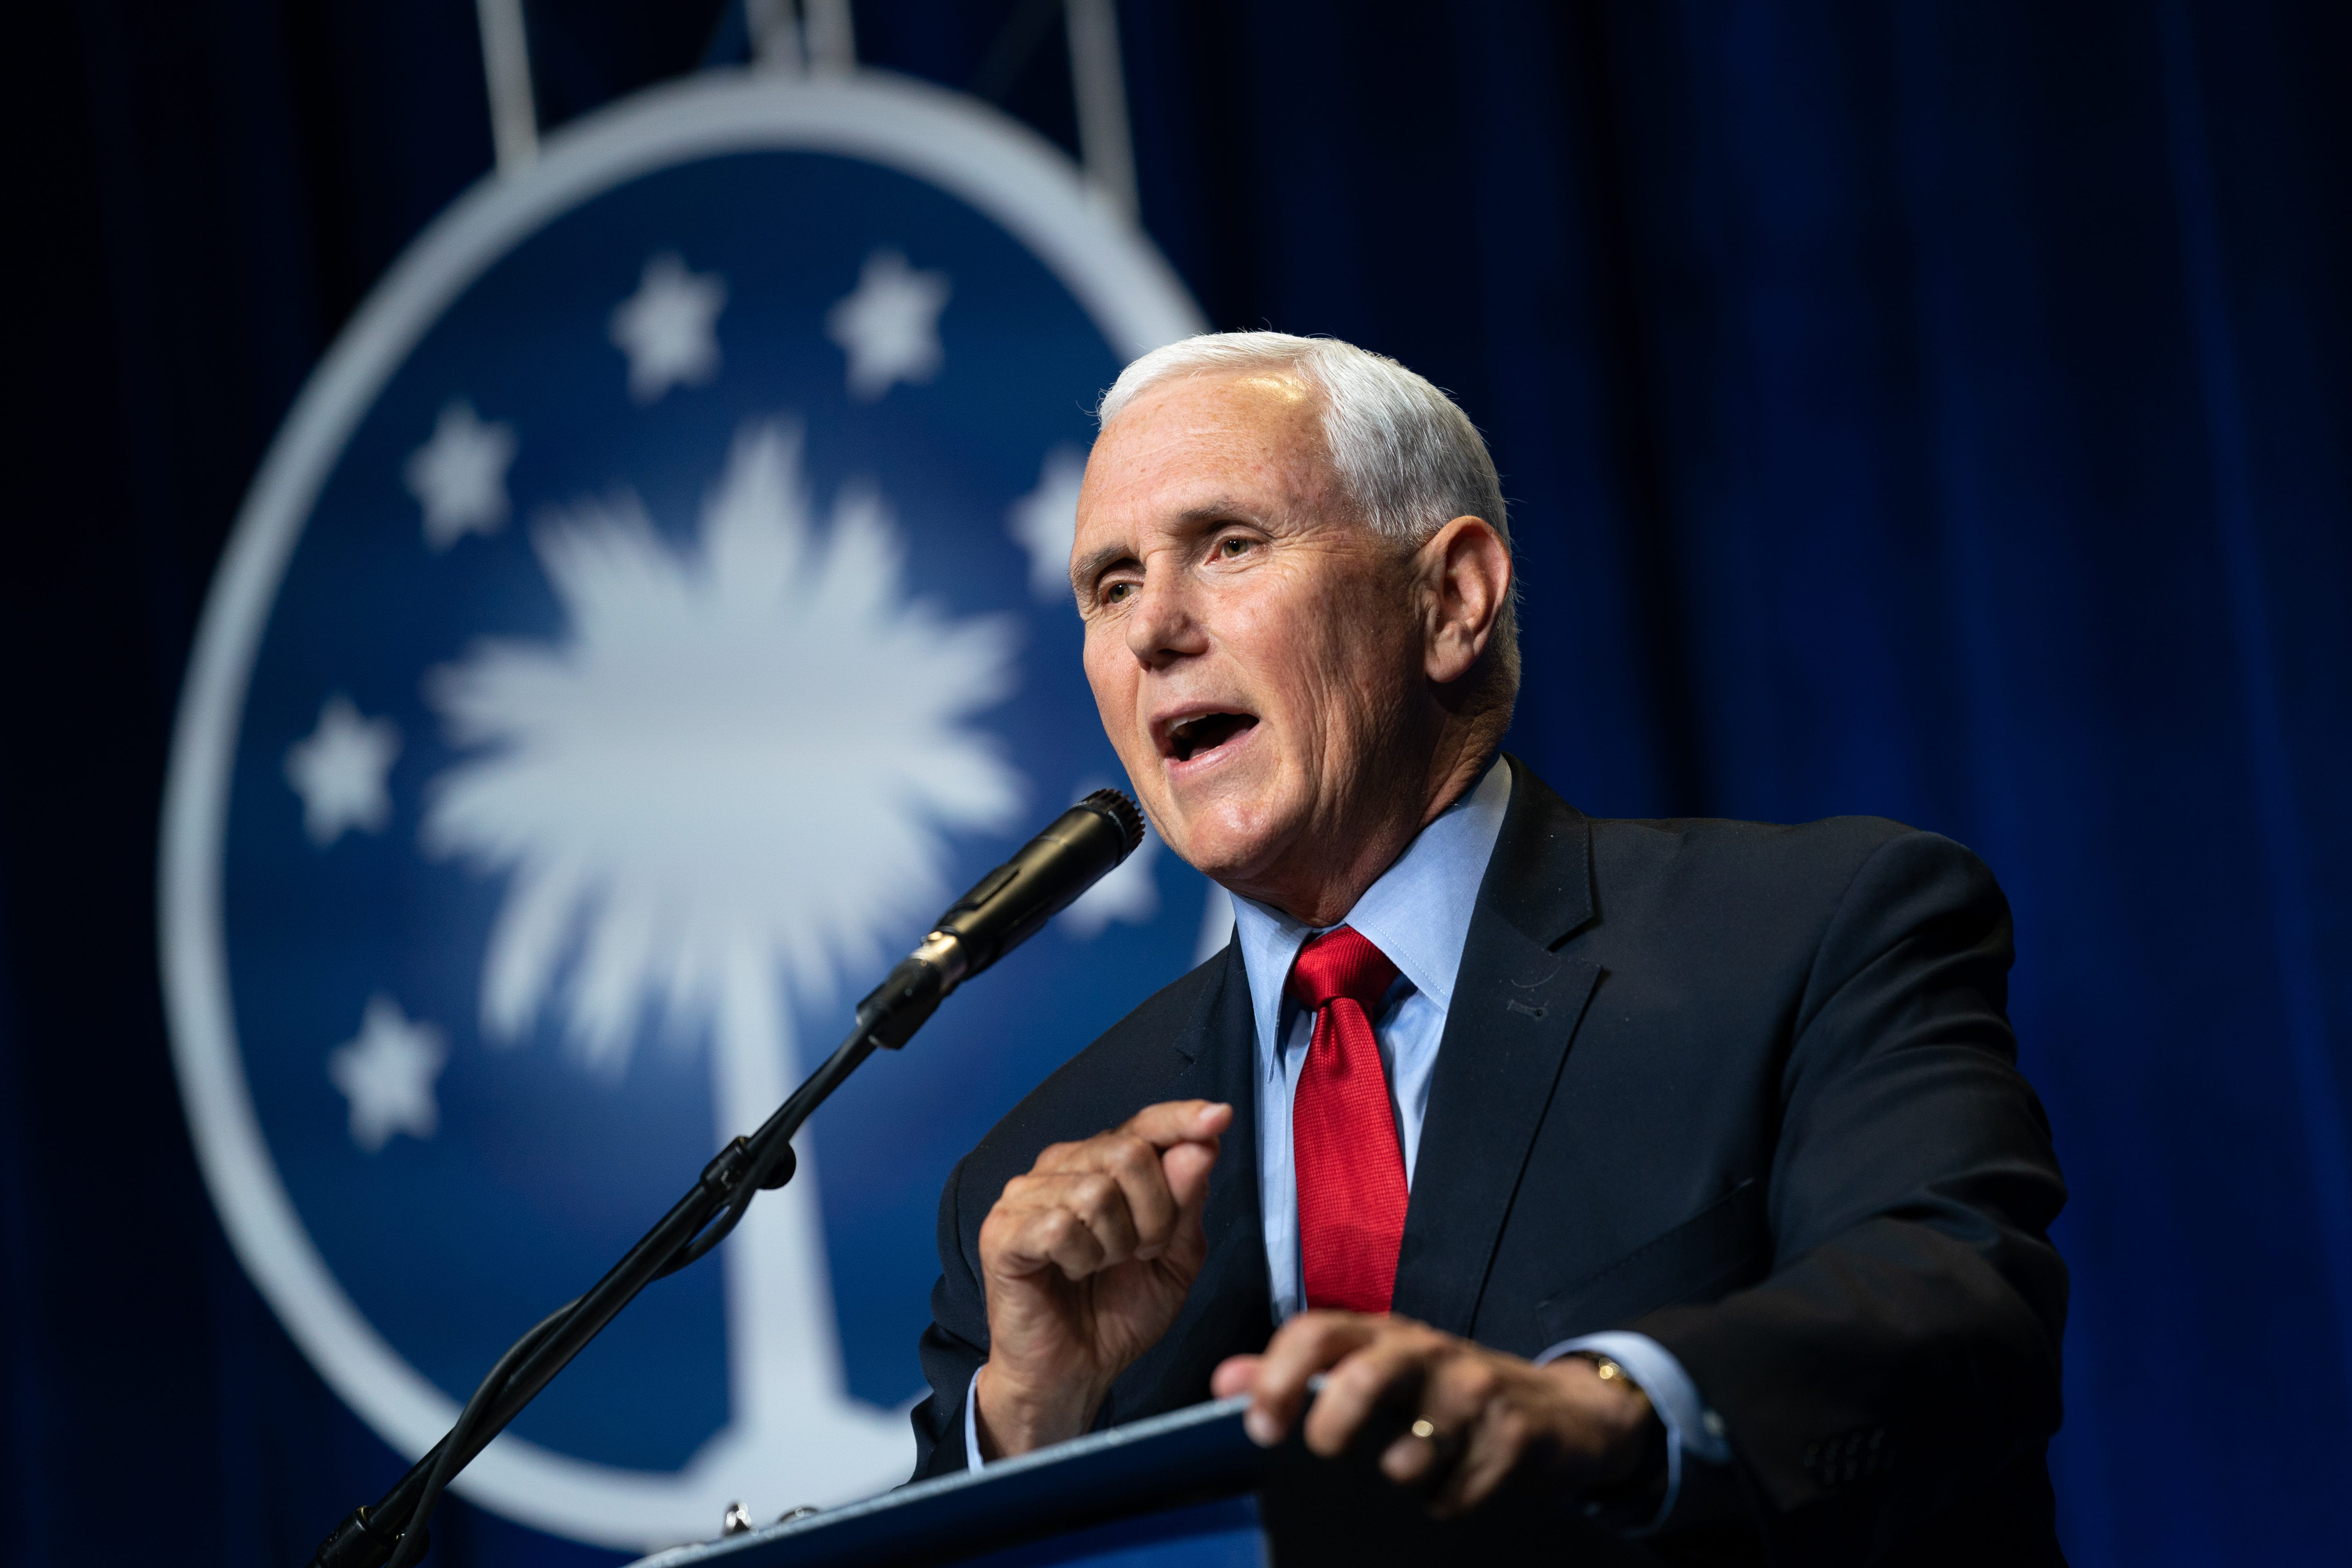 Mike Pence booed, called traitor at conservative Christian conference